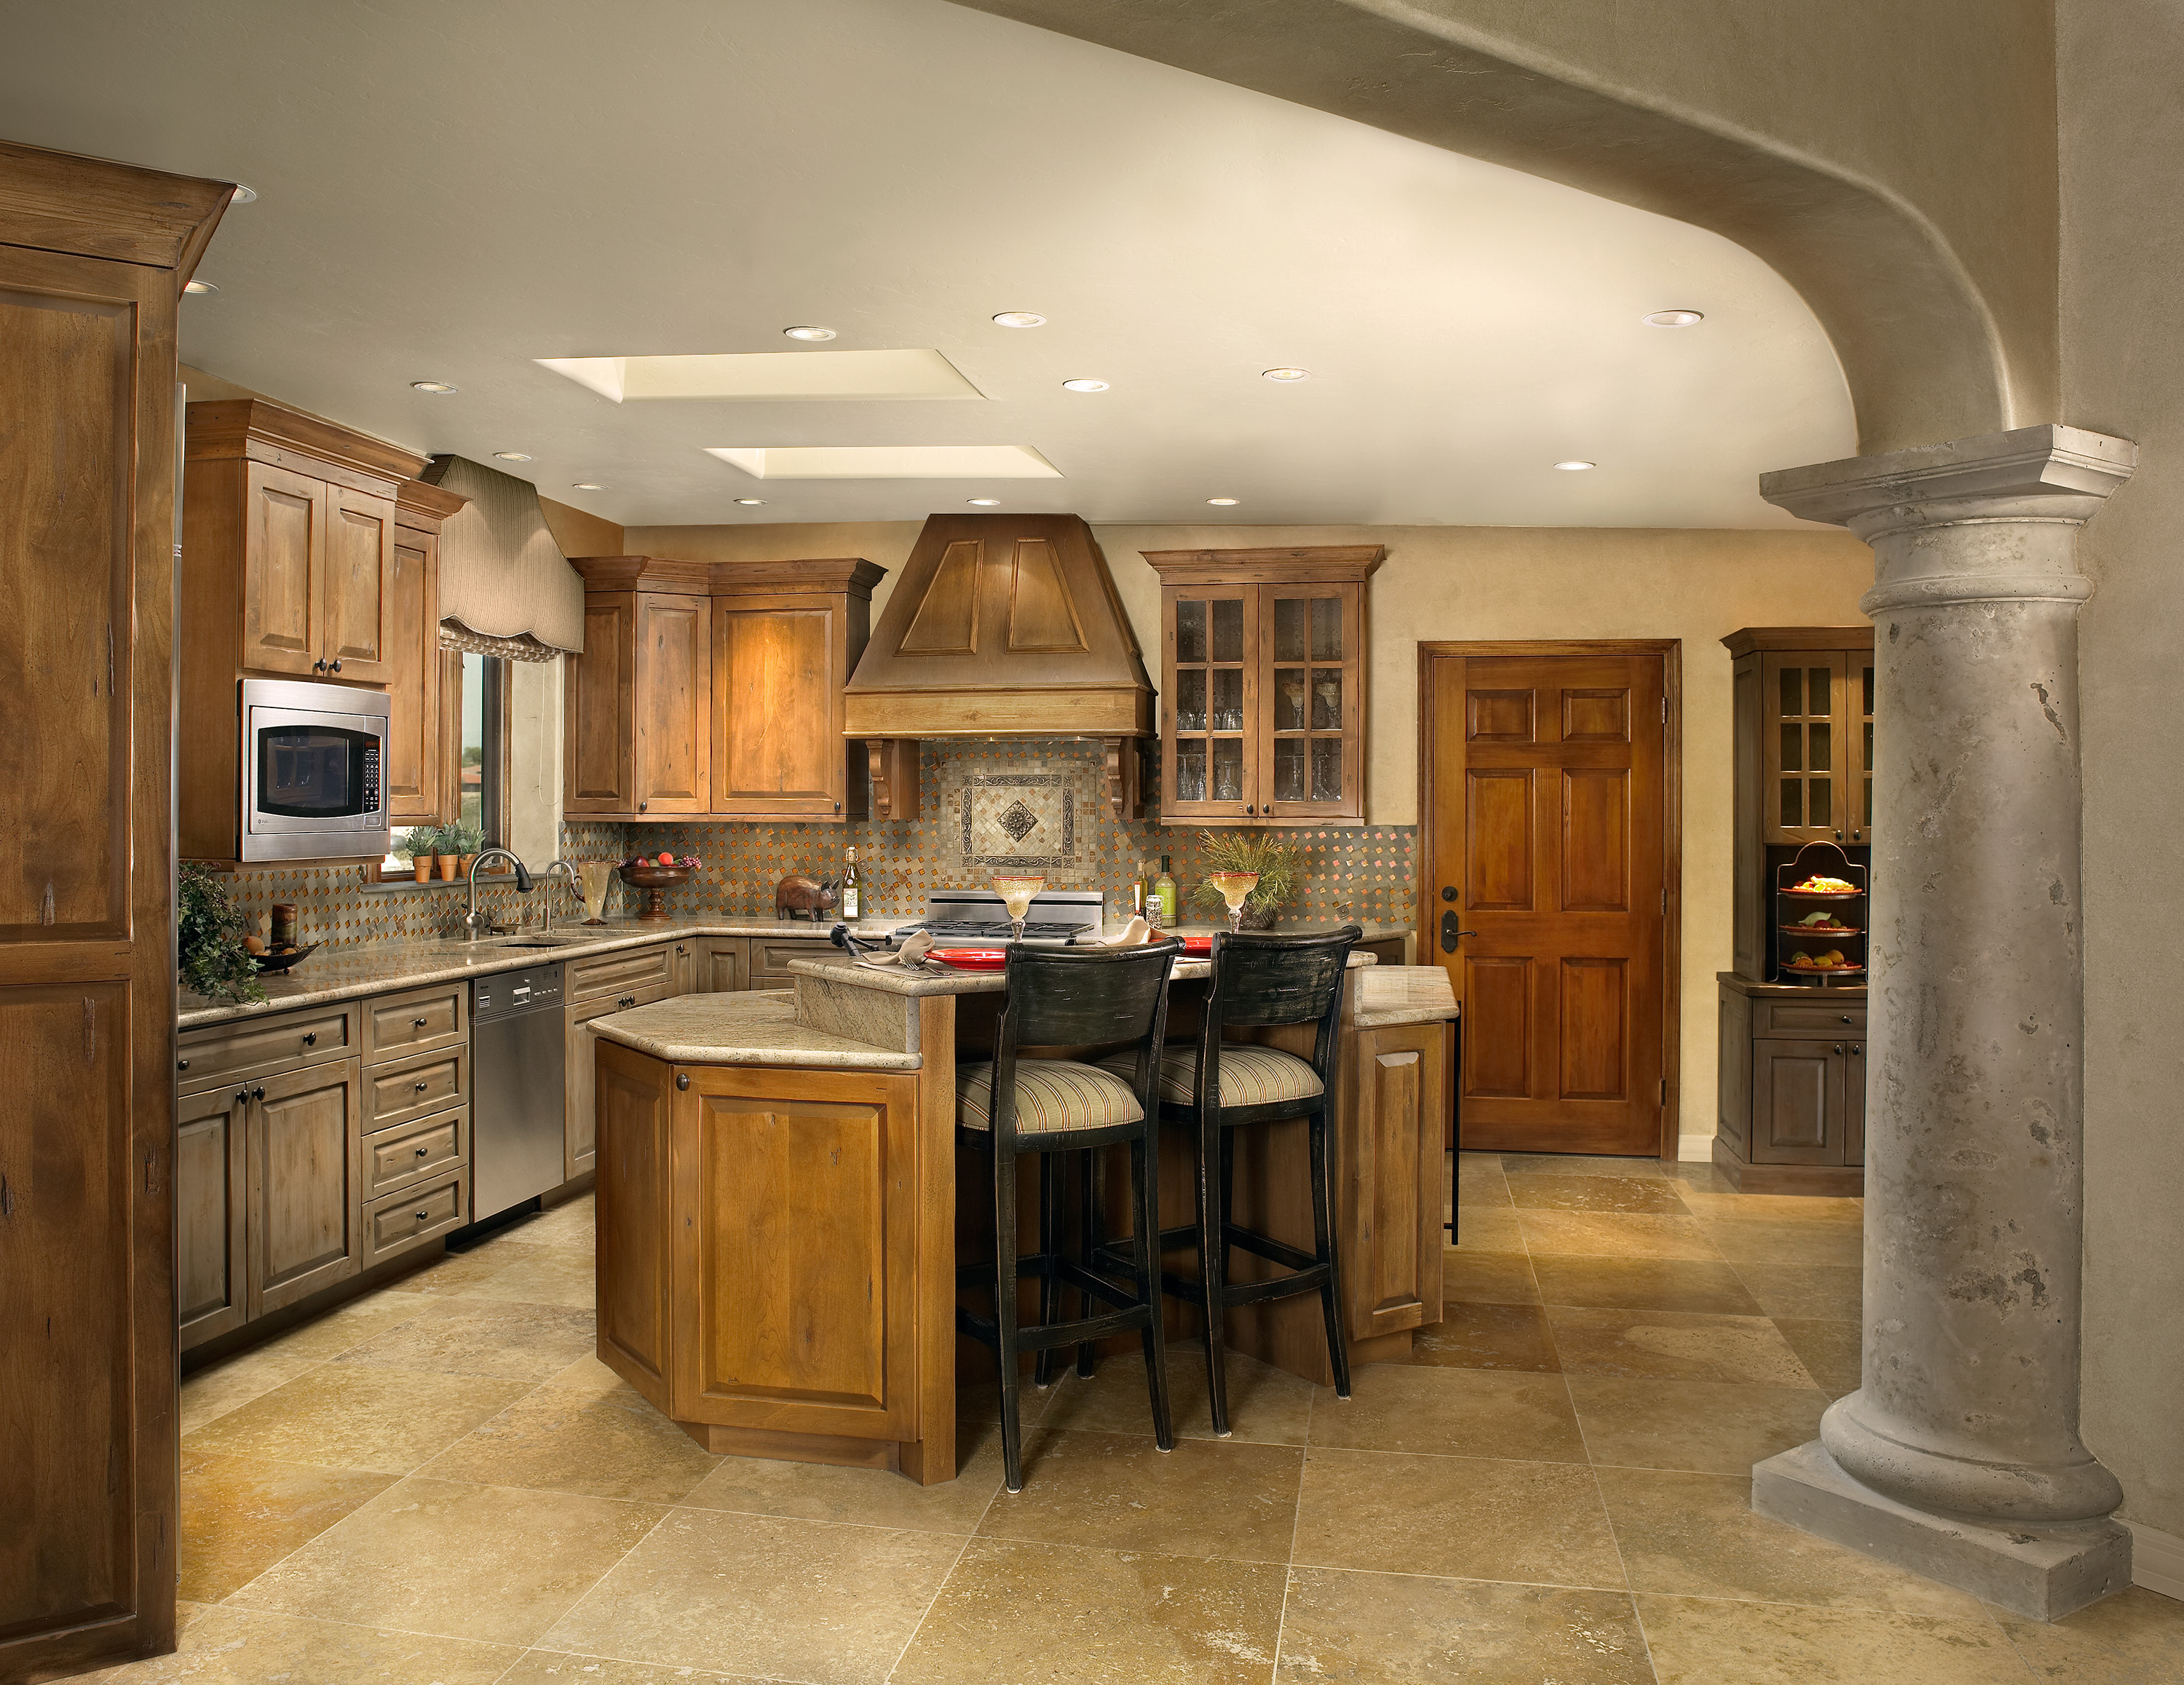 Tucson kitchen remodeling ideas projects eren design for Kitchen design tucson